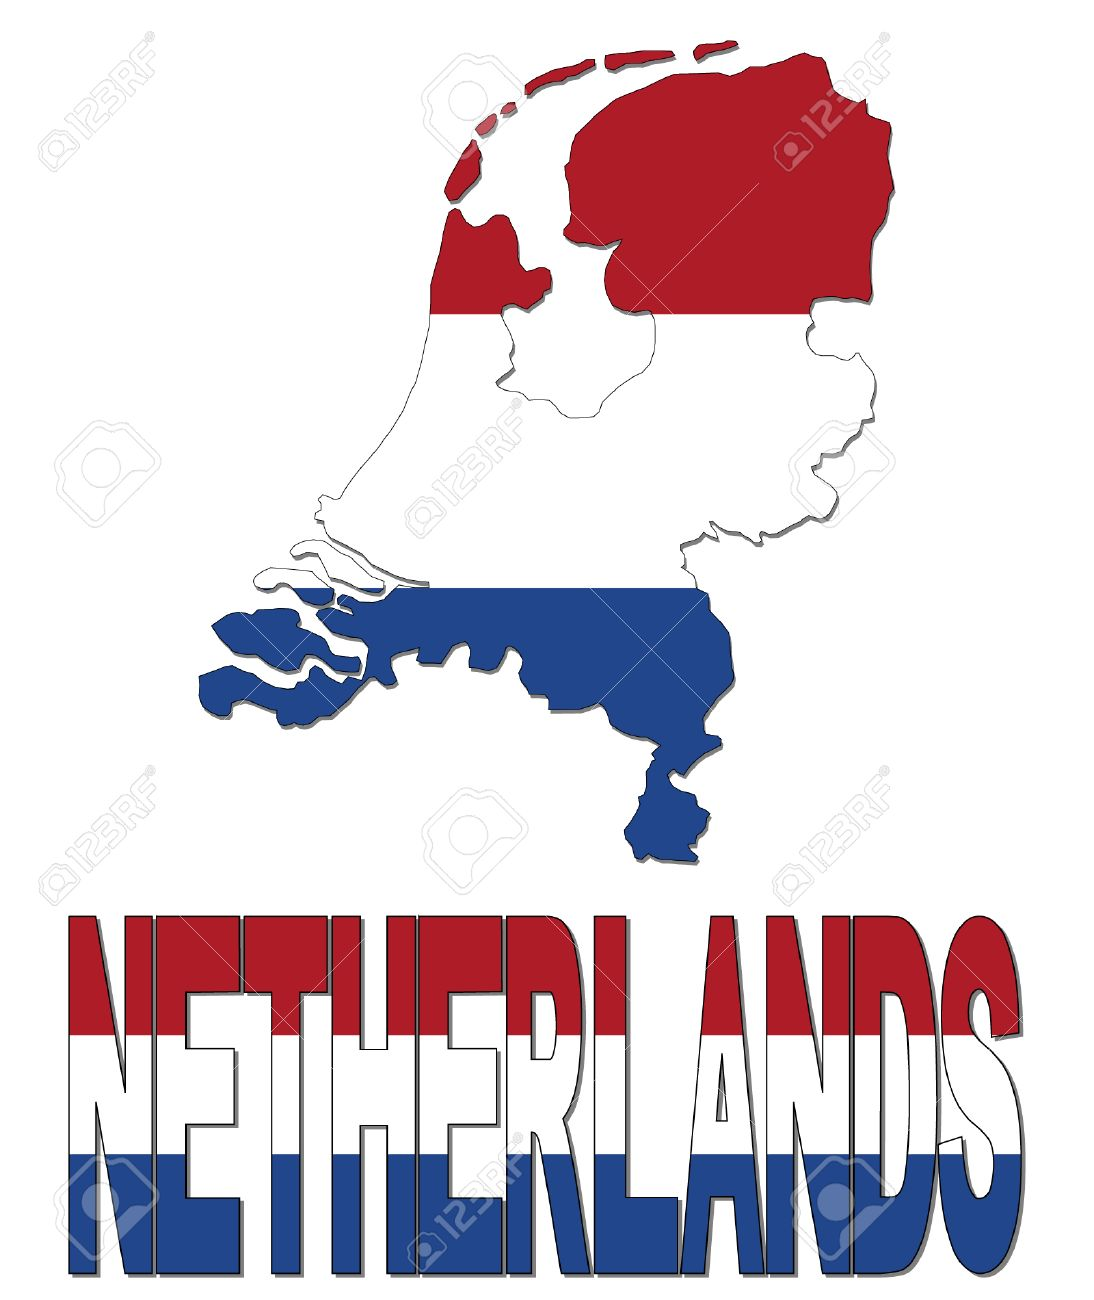 Netherlands Map Flag And Text Illustration Royalty Free Cliparts